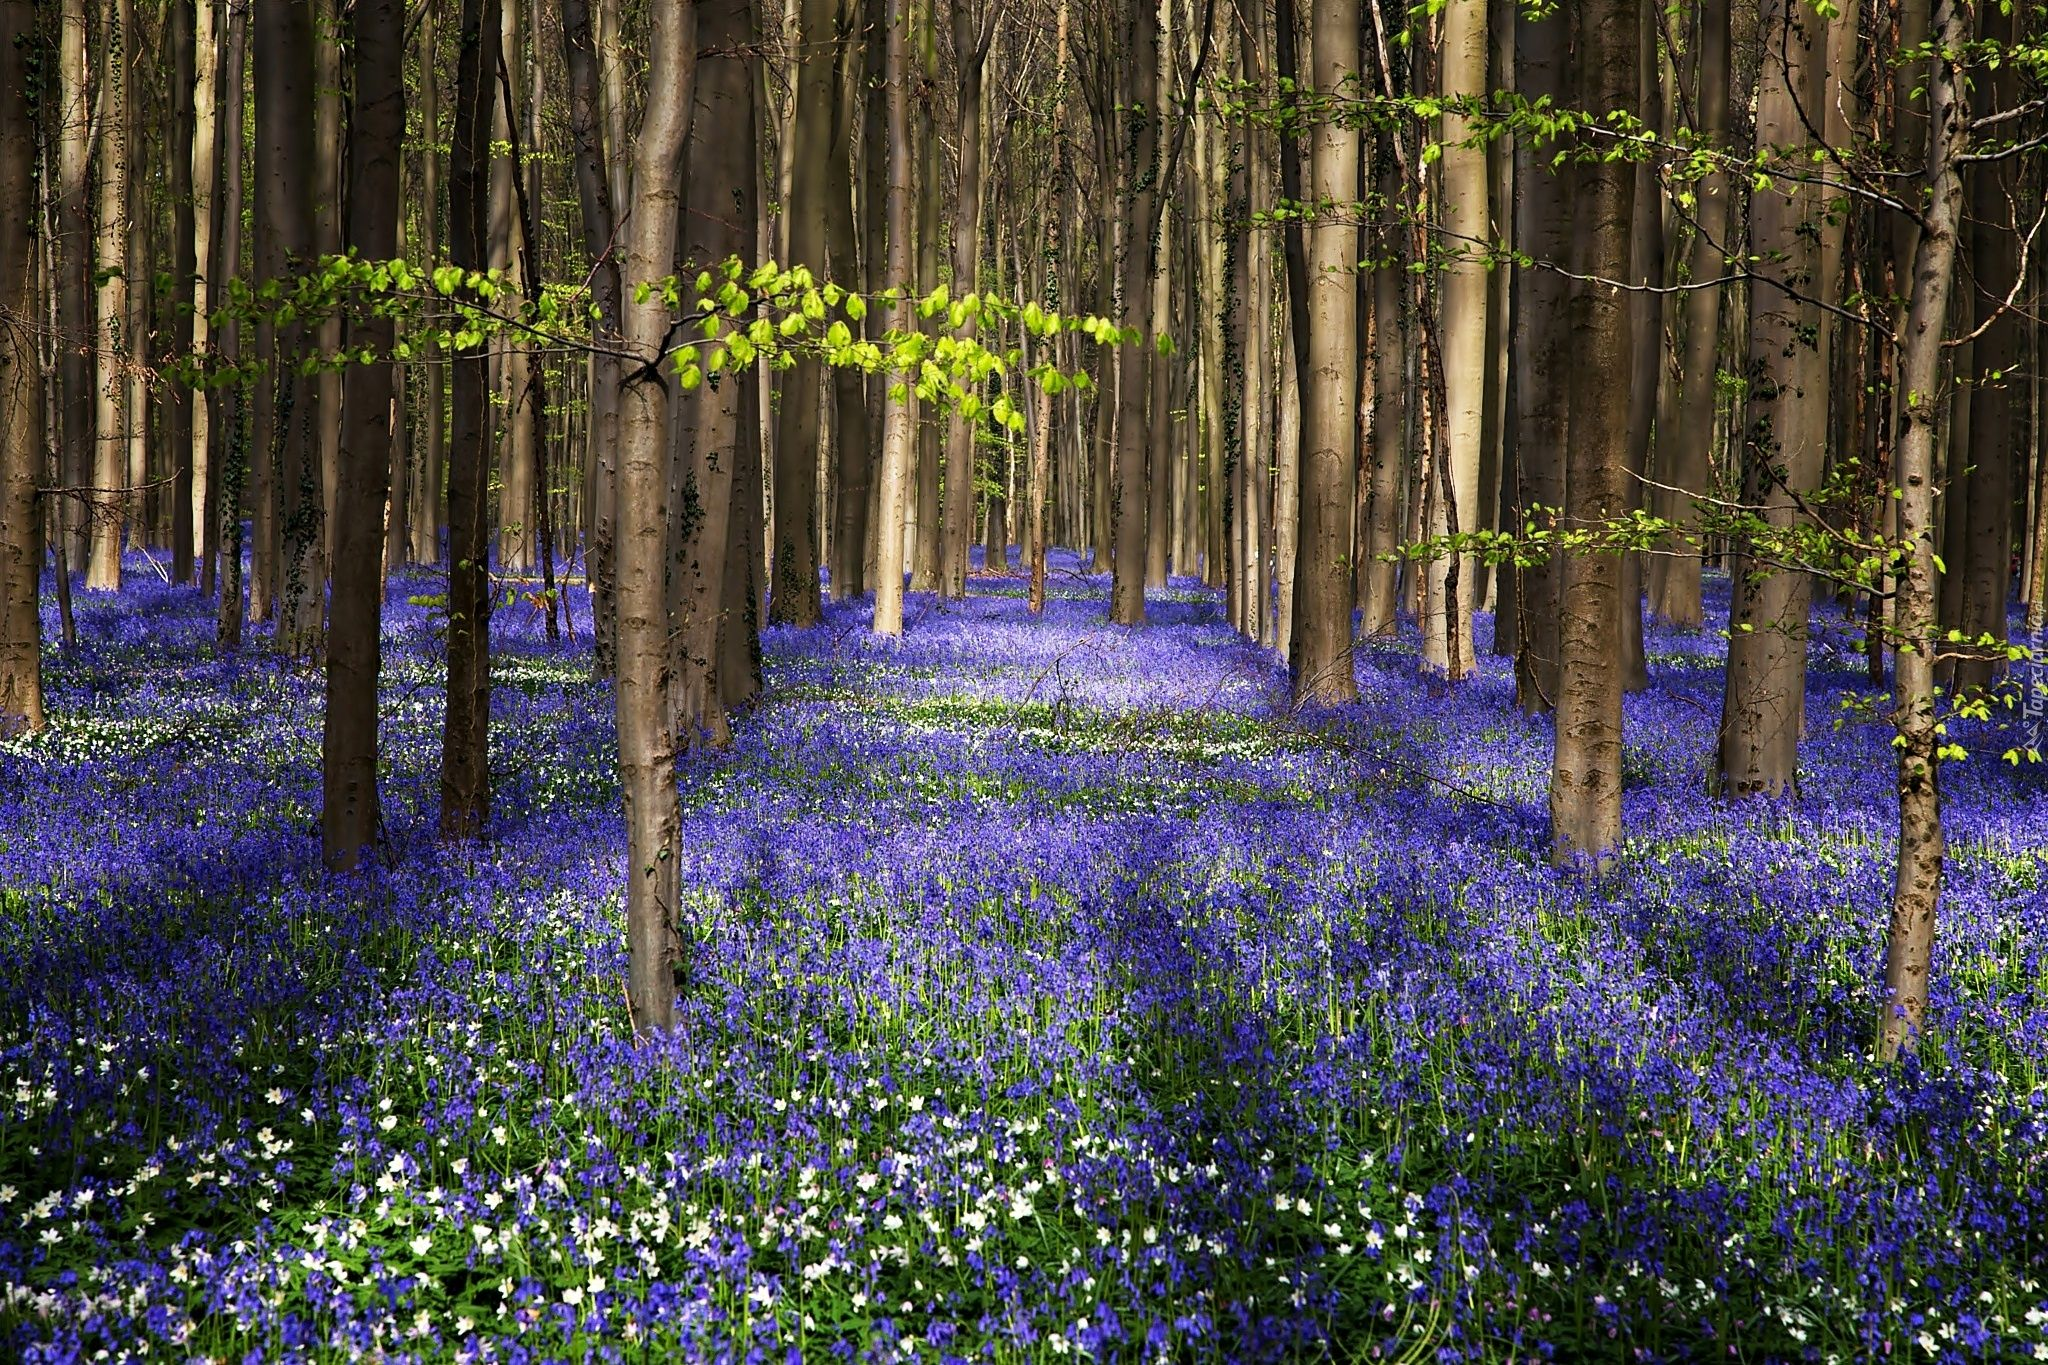 Wiosna Las Drzewa Fioletowe Biale Kwiaty Spring Forest Forest Pictures Lilac Flowers